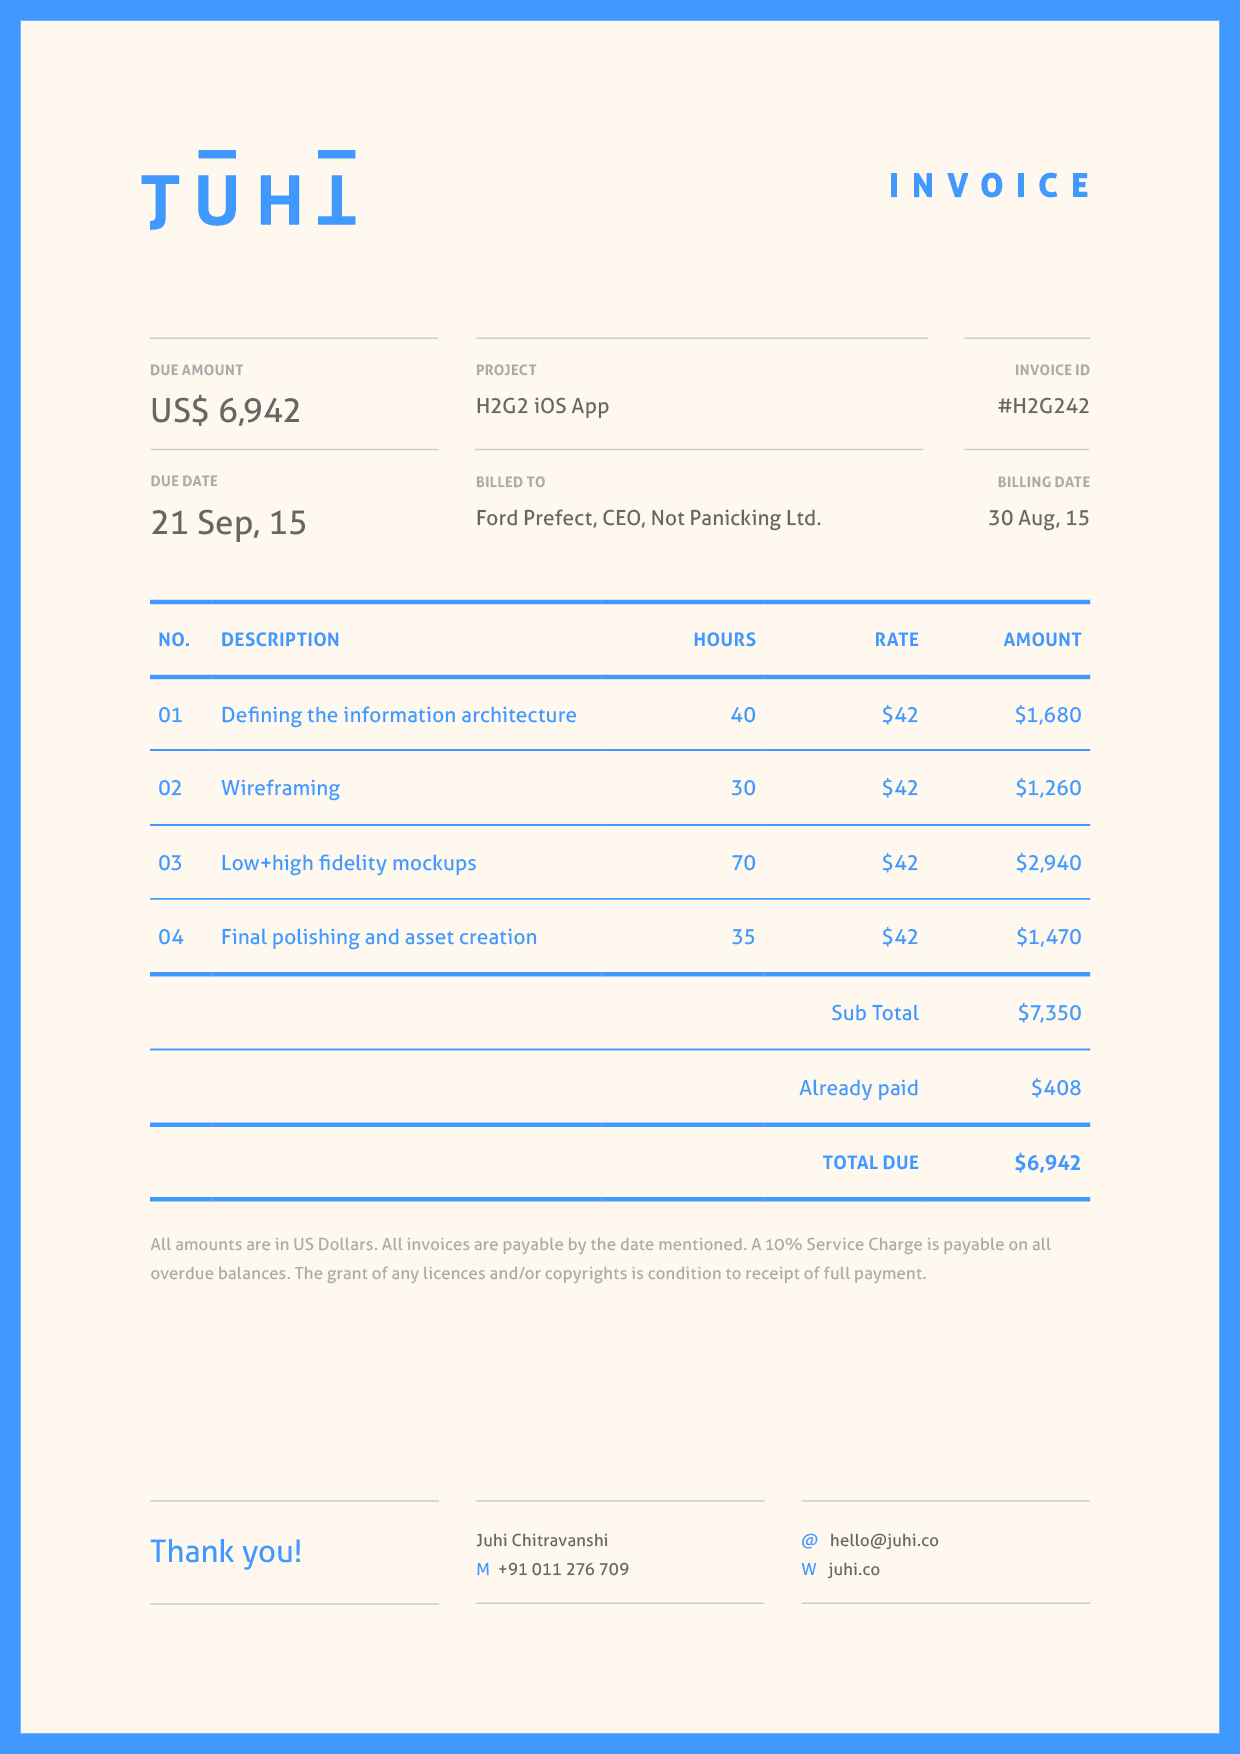 Usdgus  Terrific Dont Hold Back On Your Invoice  Inspiring Designs  With Luxury Invoice By Juhi Chitravanshi Follow With Charming Rental Car Receipt Also Square Register Receipt Printer In Addition Broward County Local Business Tax Receipt And Enterprise Car Rental Receipts As Well As Best Receipt Apps Additionally Neat Receipts For Mac From Inspirationfeedcom With Usdgus  Luxury Dont Hold Back On Your Invoice  Inspiring Designs  With Charming Invoice By Juhi Chitravanshi Follow And Terrific Rental Car Receipt Also Square Register Receipt Printer In Addition Broward County Local Business Tax Receipt From Inspirationfeedcom